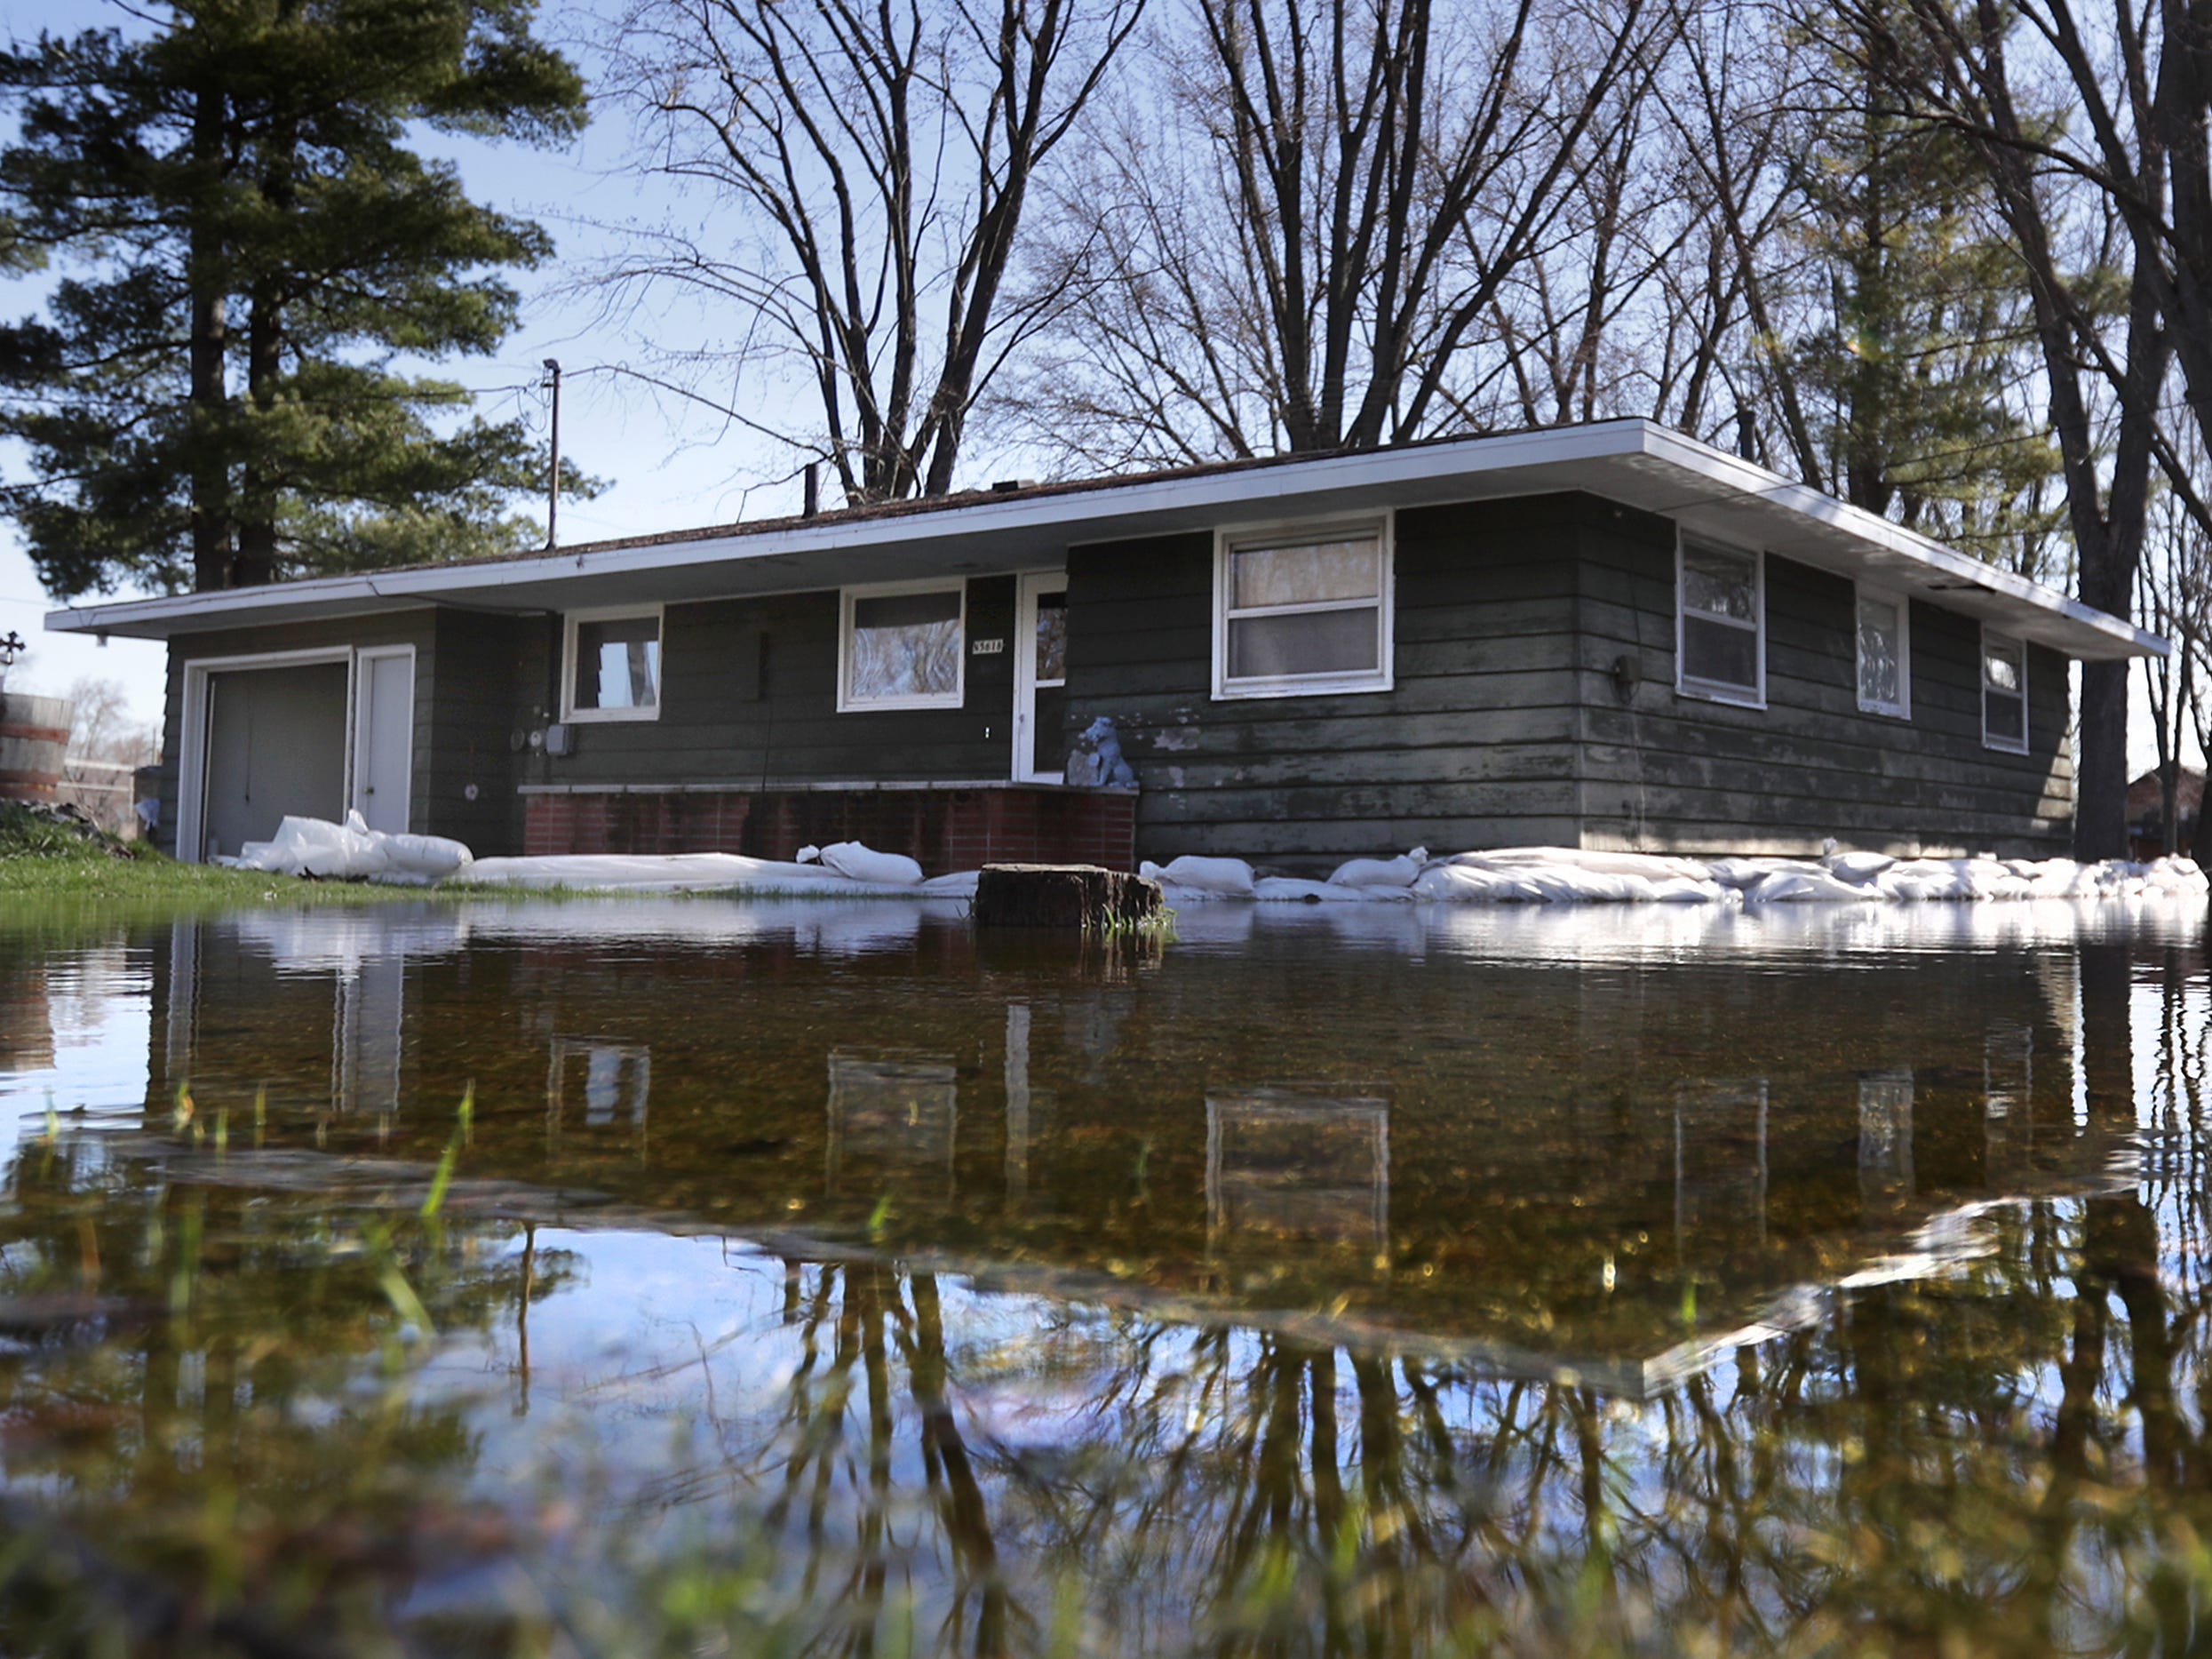 A home is surrounded by sandbags and flood water along Mill St. during flooding along the Wolf River on Tuesday, April 23, 2019, in Shiocton, Wis.  Wm. Glasheen/USA TODAY NETWORK-Wisconsin.